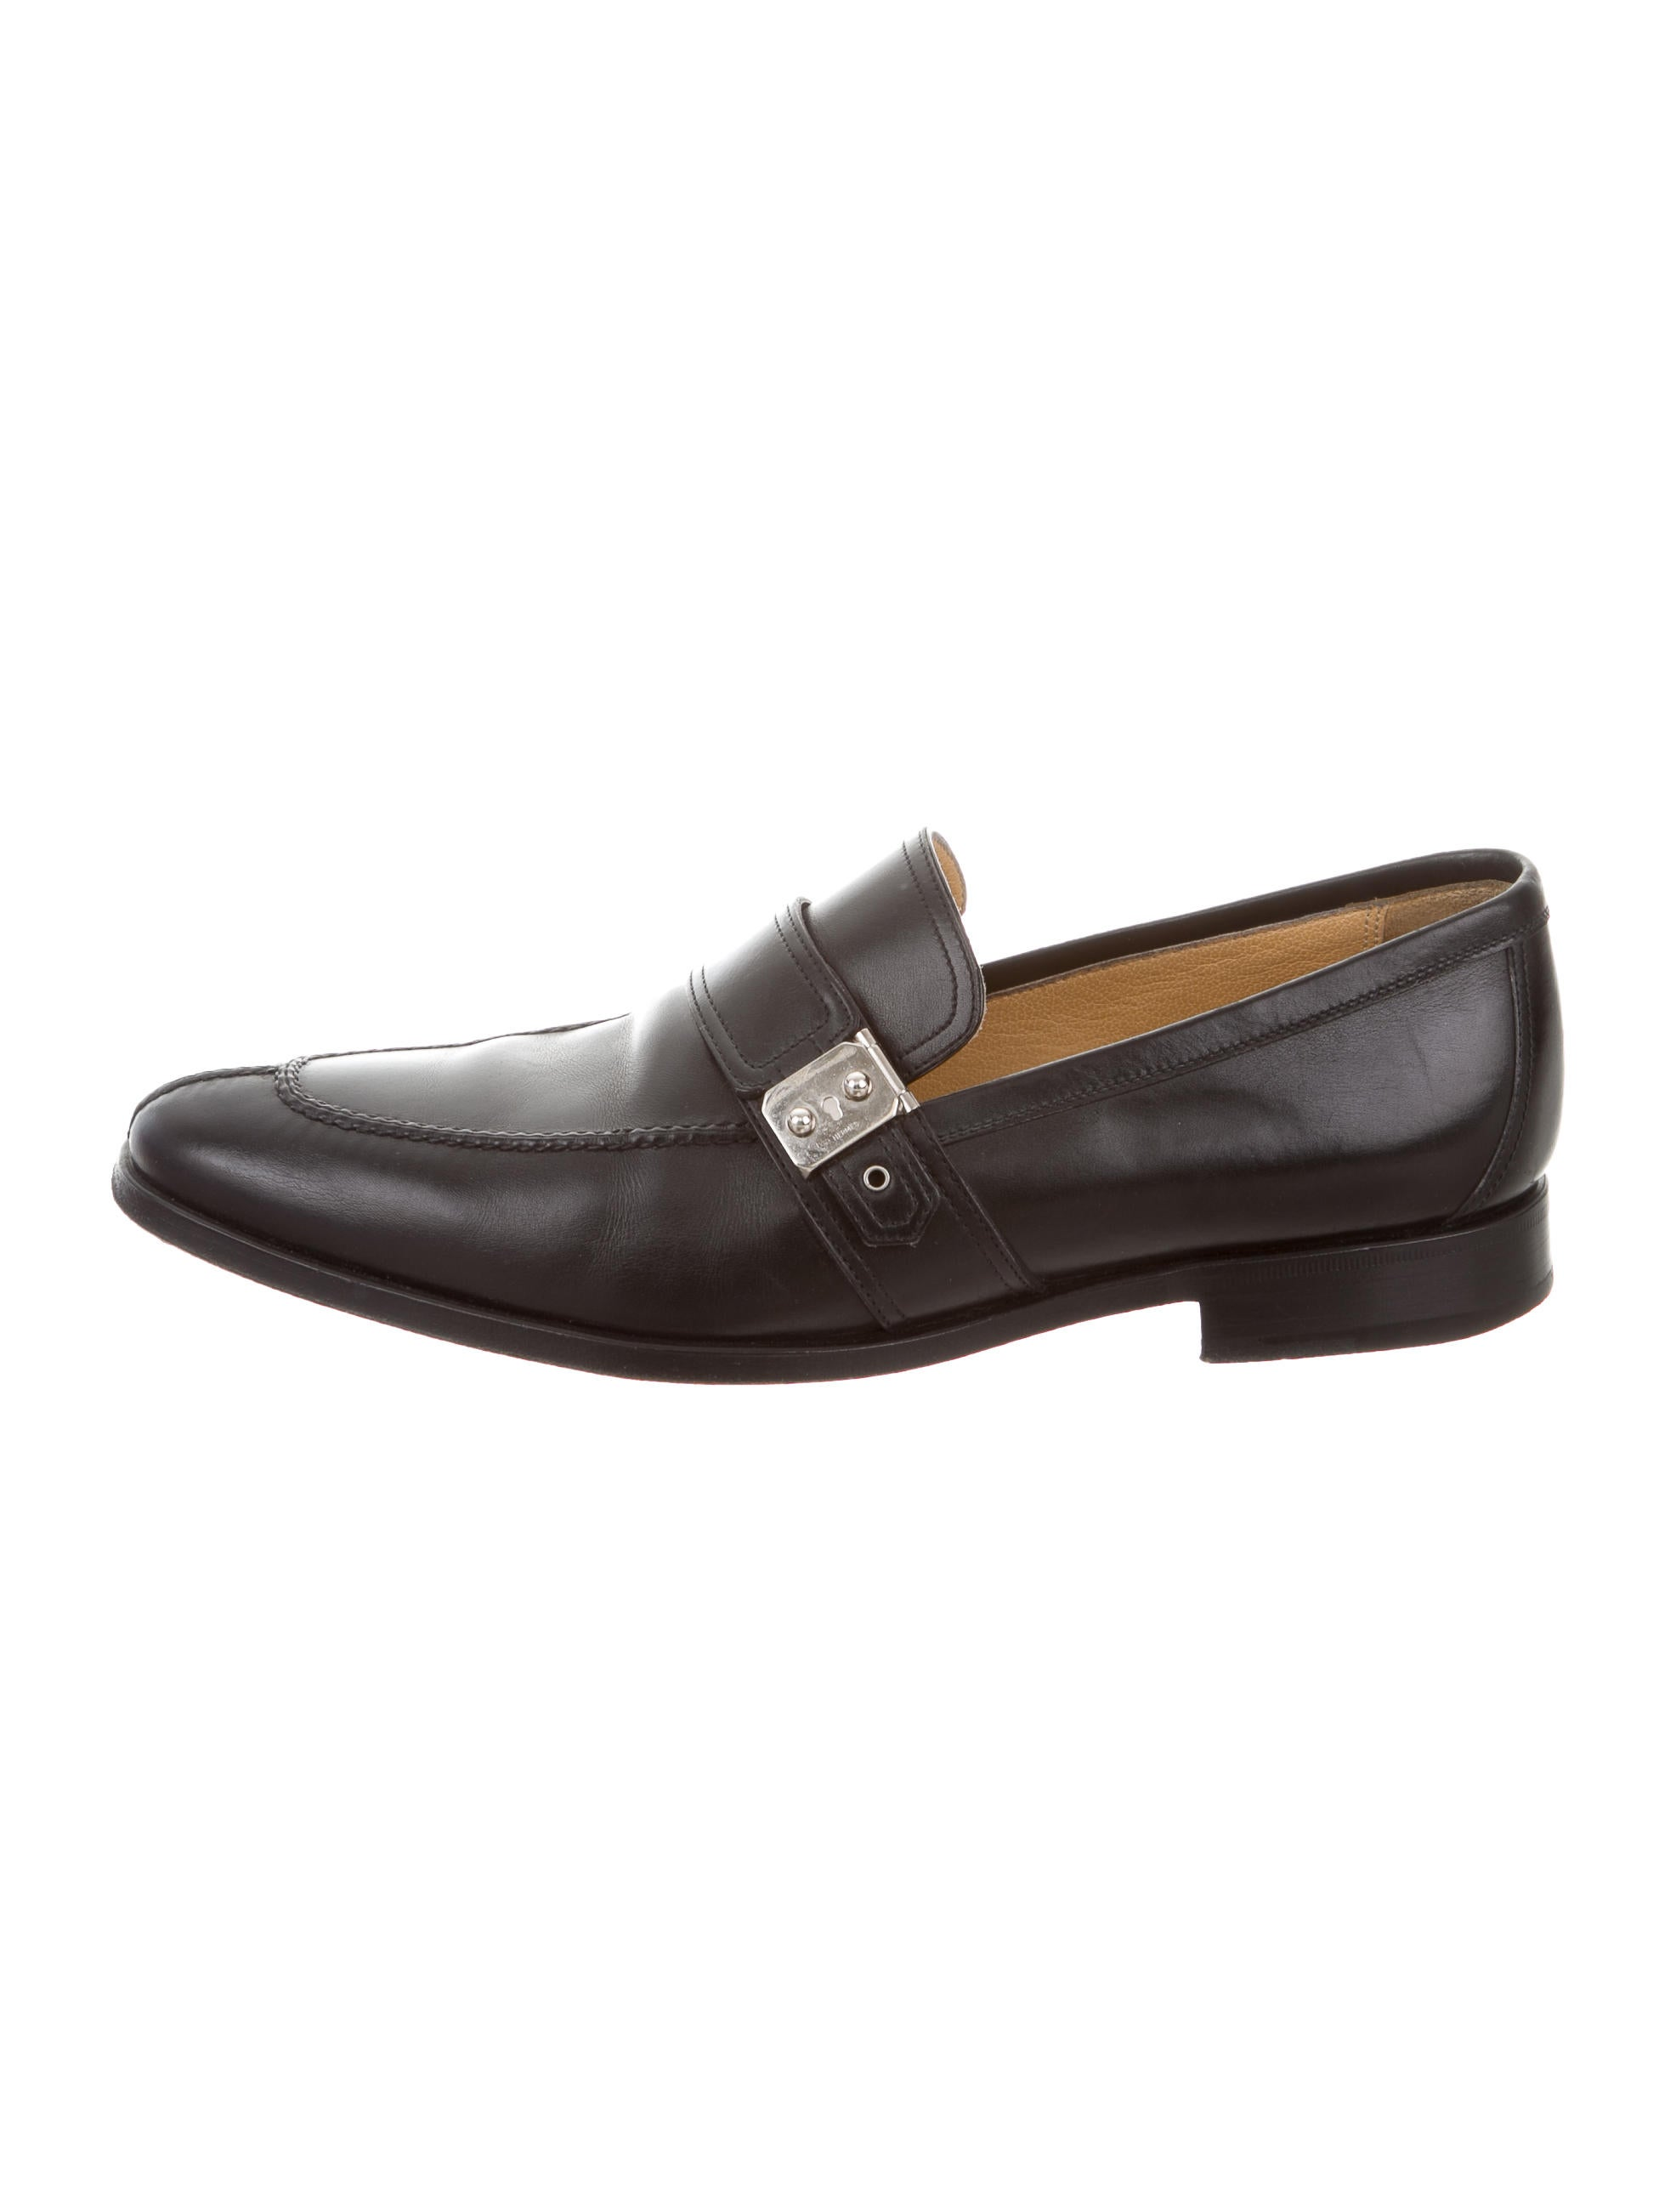 Hermès Logo Round-Toe Loafers clearance order pay with paypal for sale clearance best sale under $60 best place to buy online iv6ec09lm